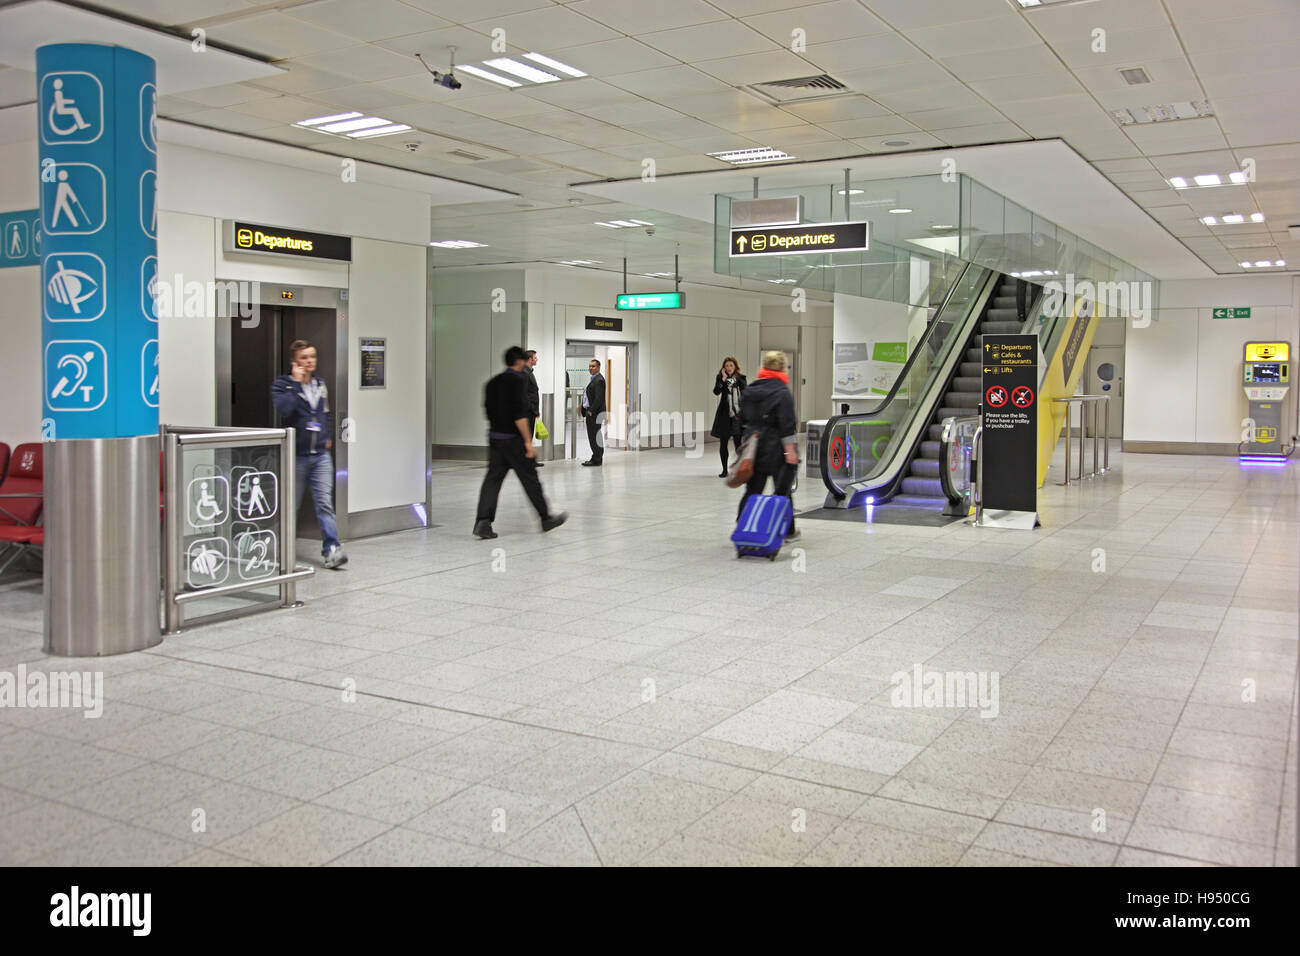 Interior of Gatwick Airport's North Terminal showing lift and escalator signposted 'Departures' with - Stock Image